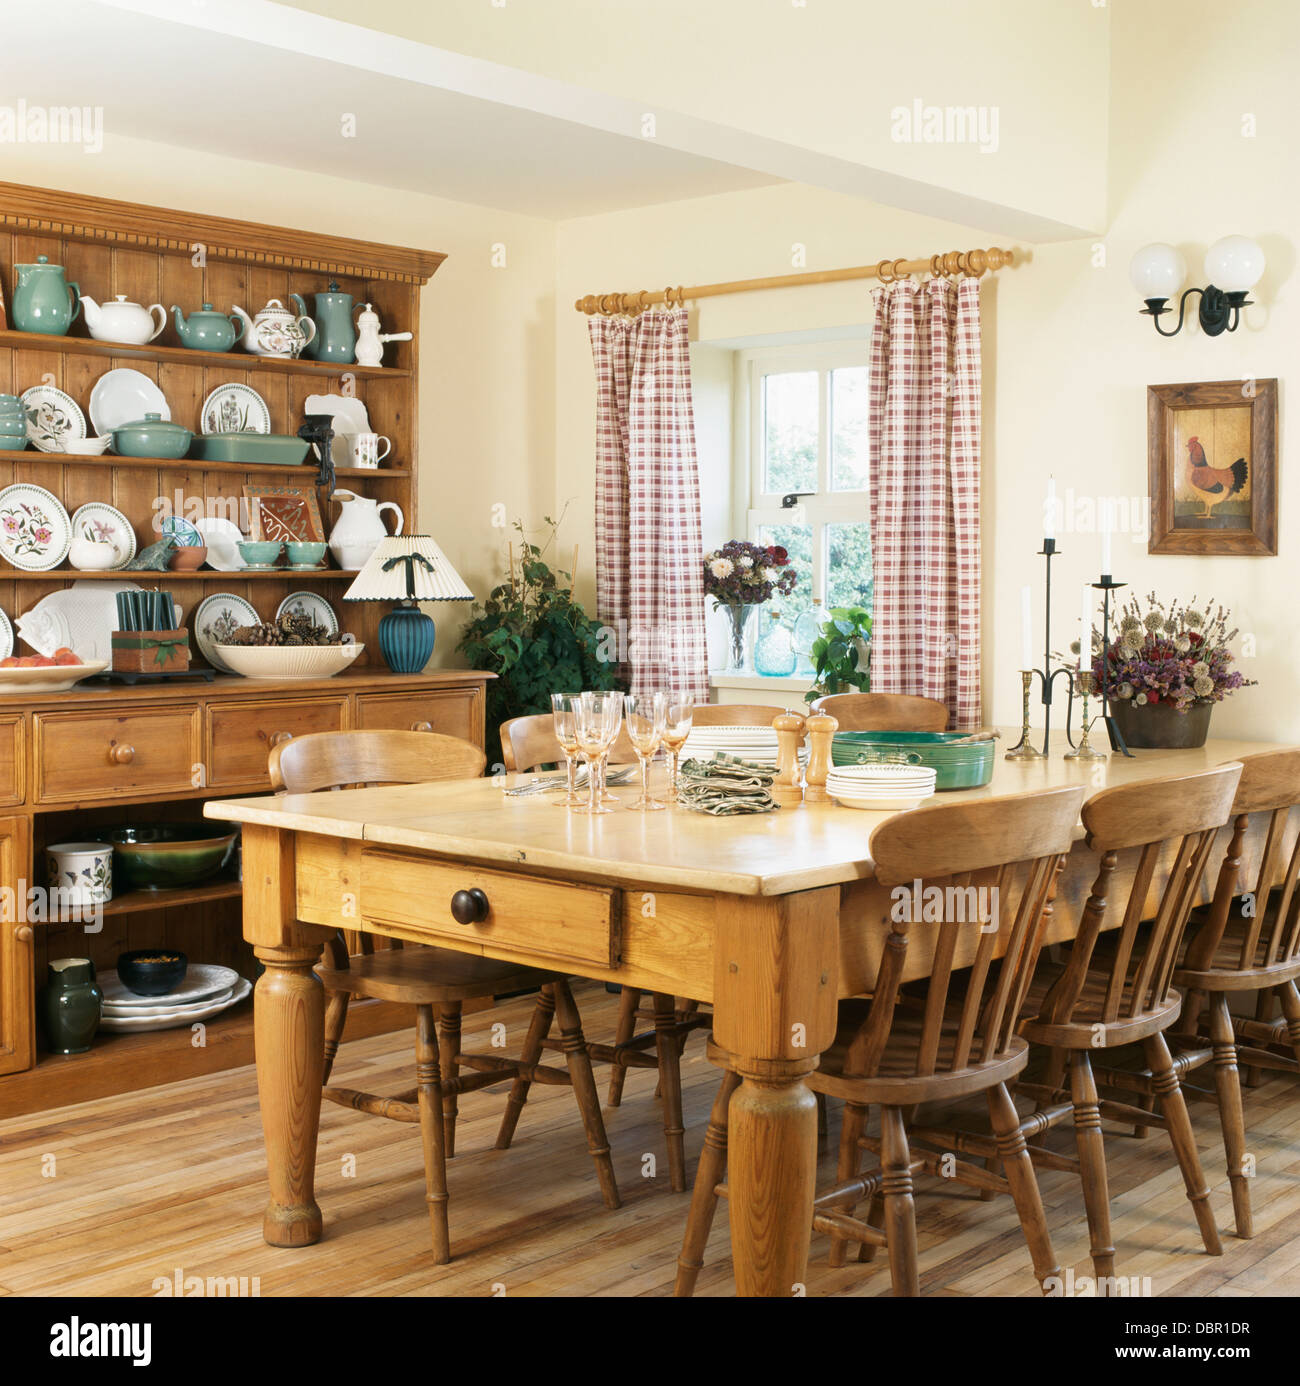 Country Kitchen Table Sets: Pine Table And Chairs And Large Pine Dresser In Country